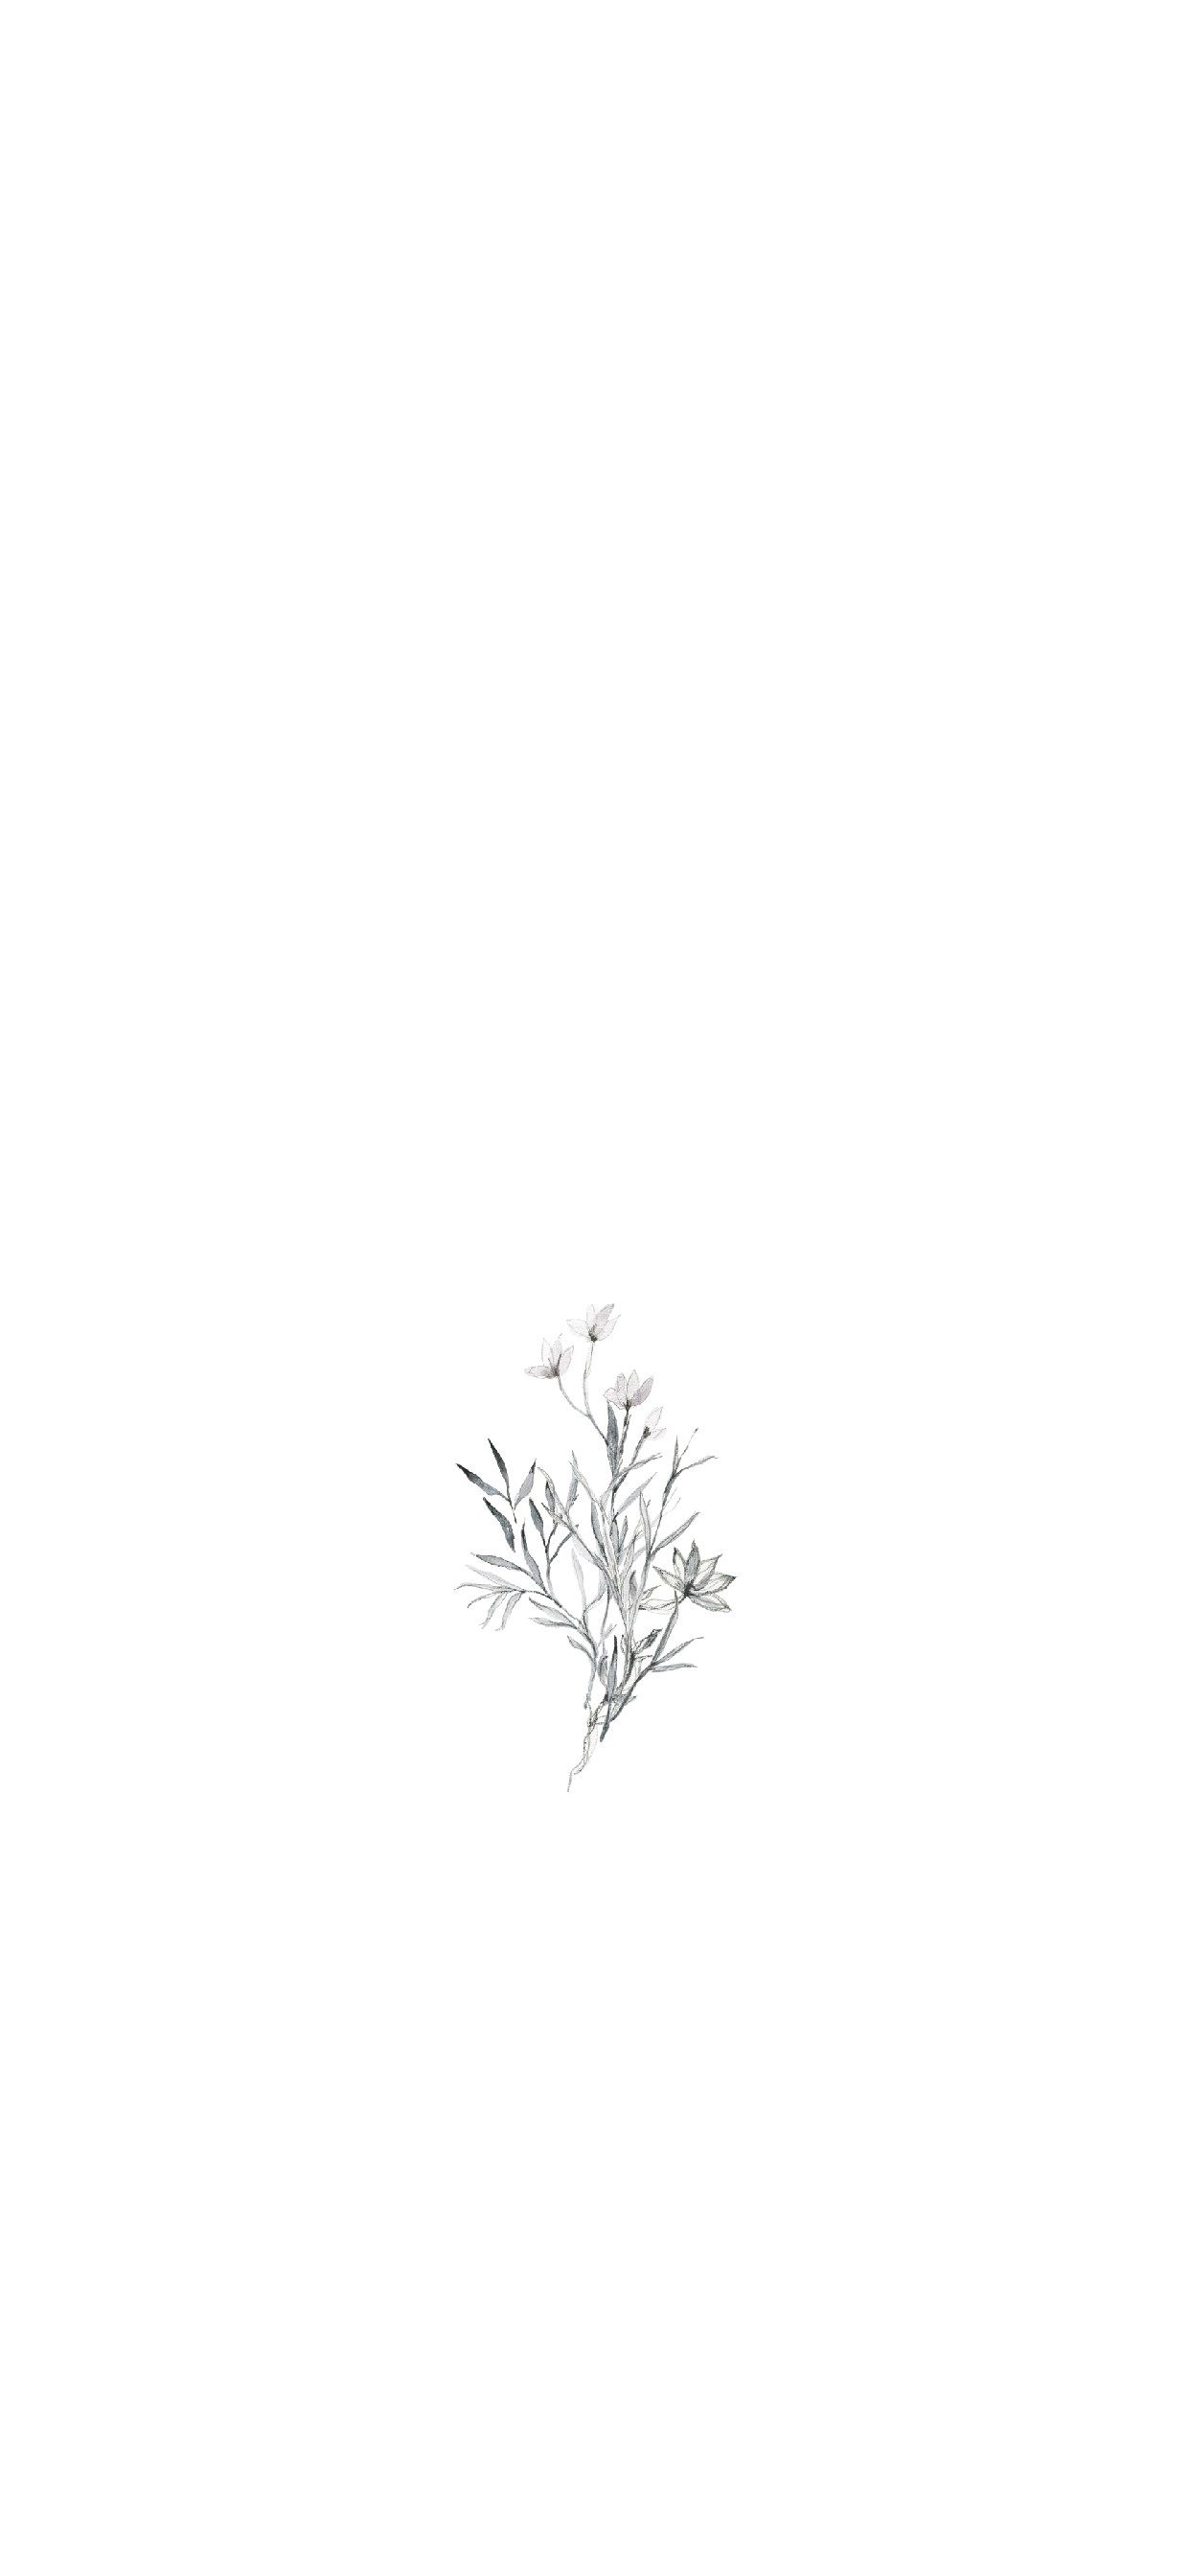 Flower Drawing Wallpapers Top Free Flower Drawing Backgrounds Wallpaperaccess